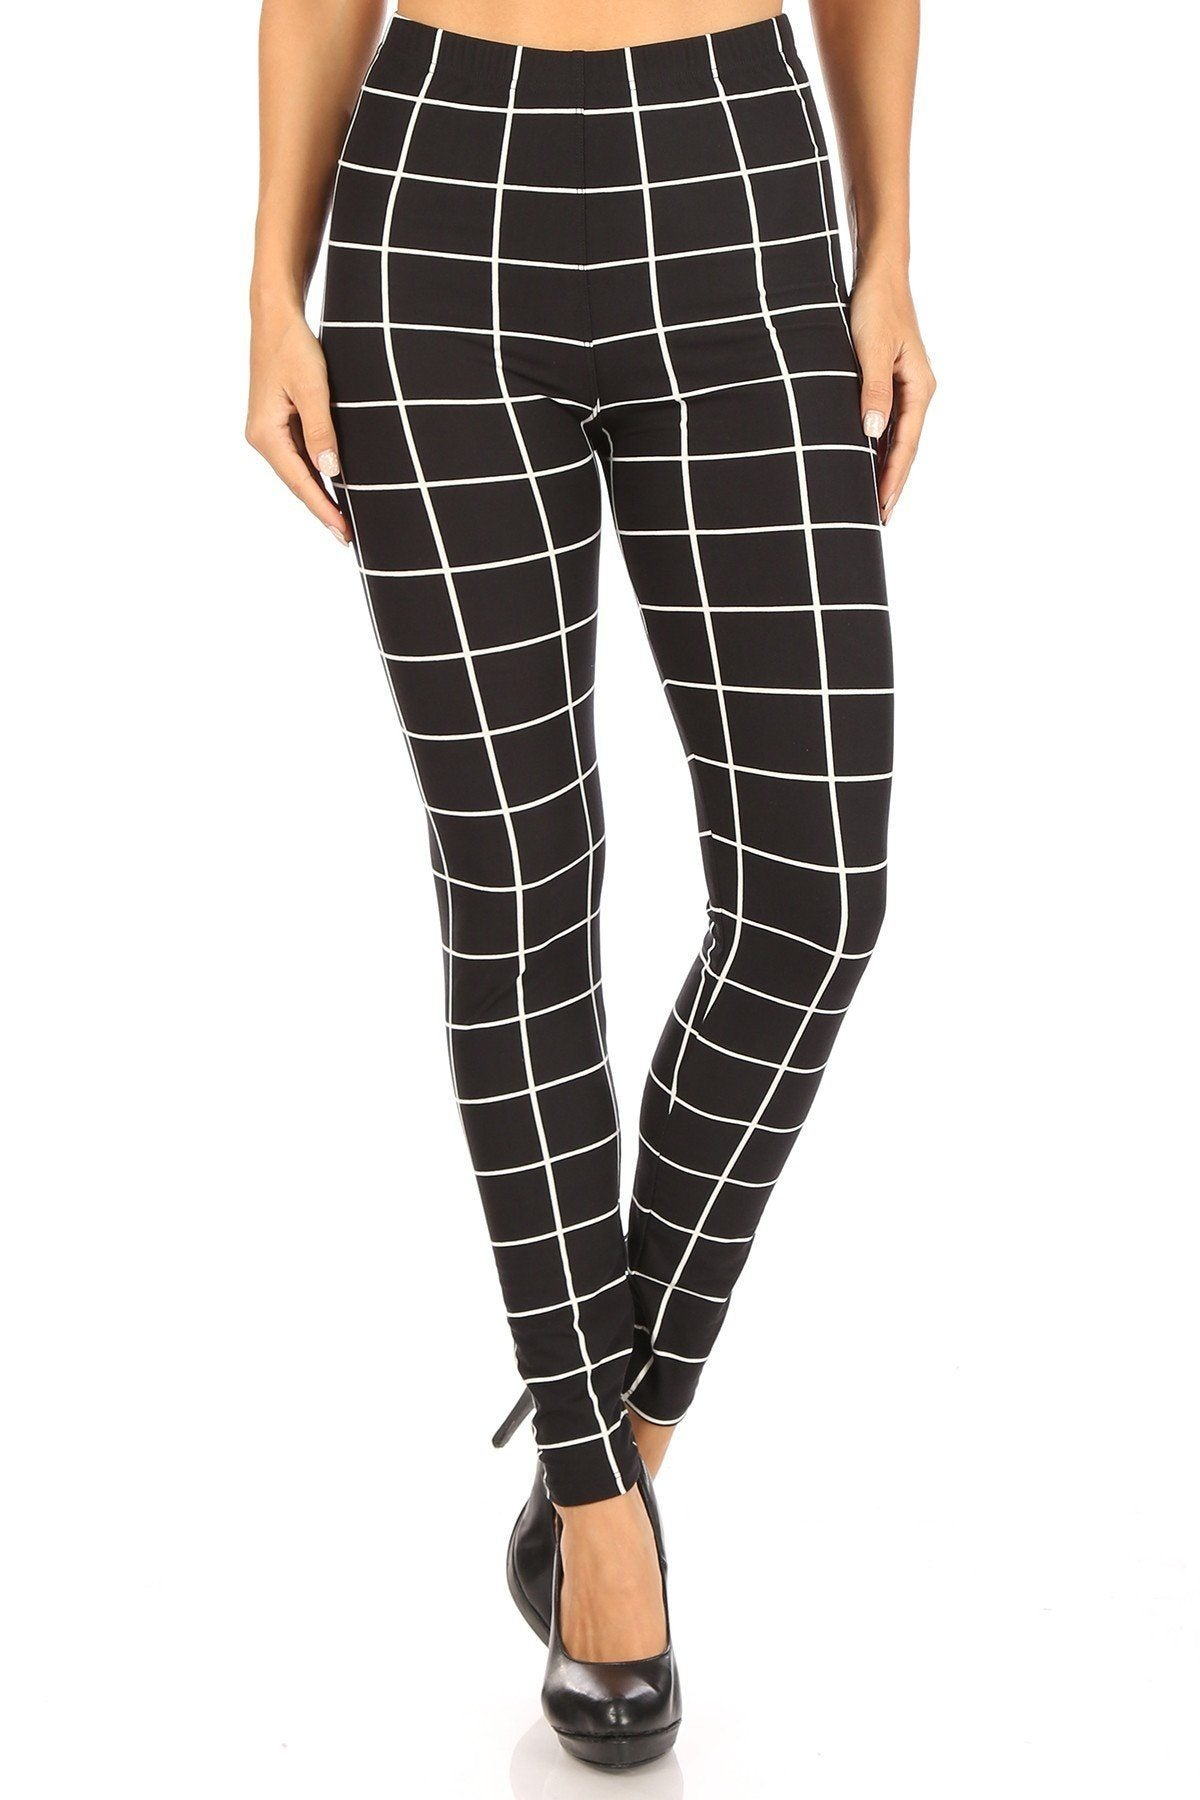 Plaid High Waisted Leggings With Elastic Waist And Skinny Fit